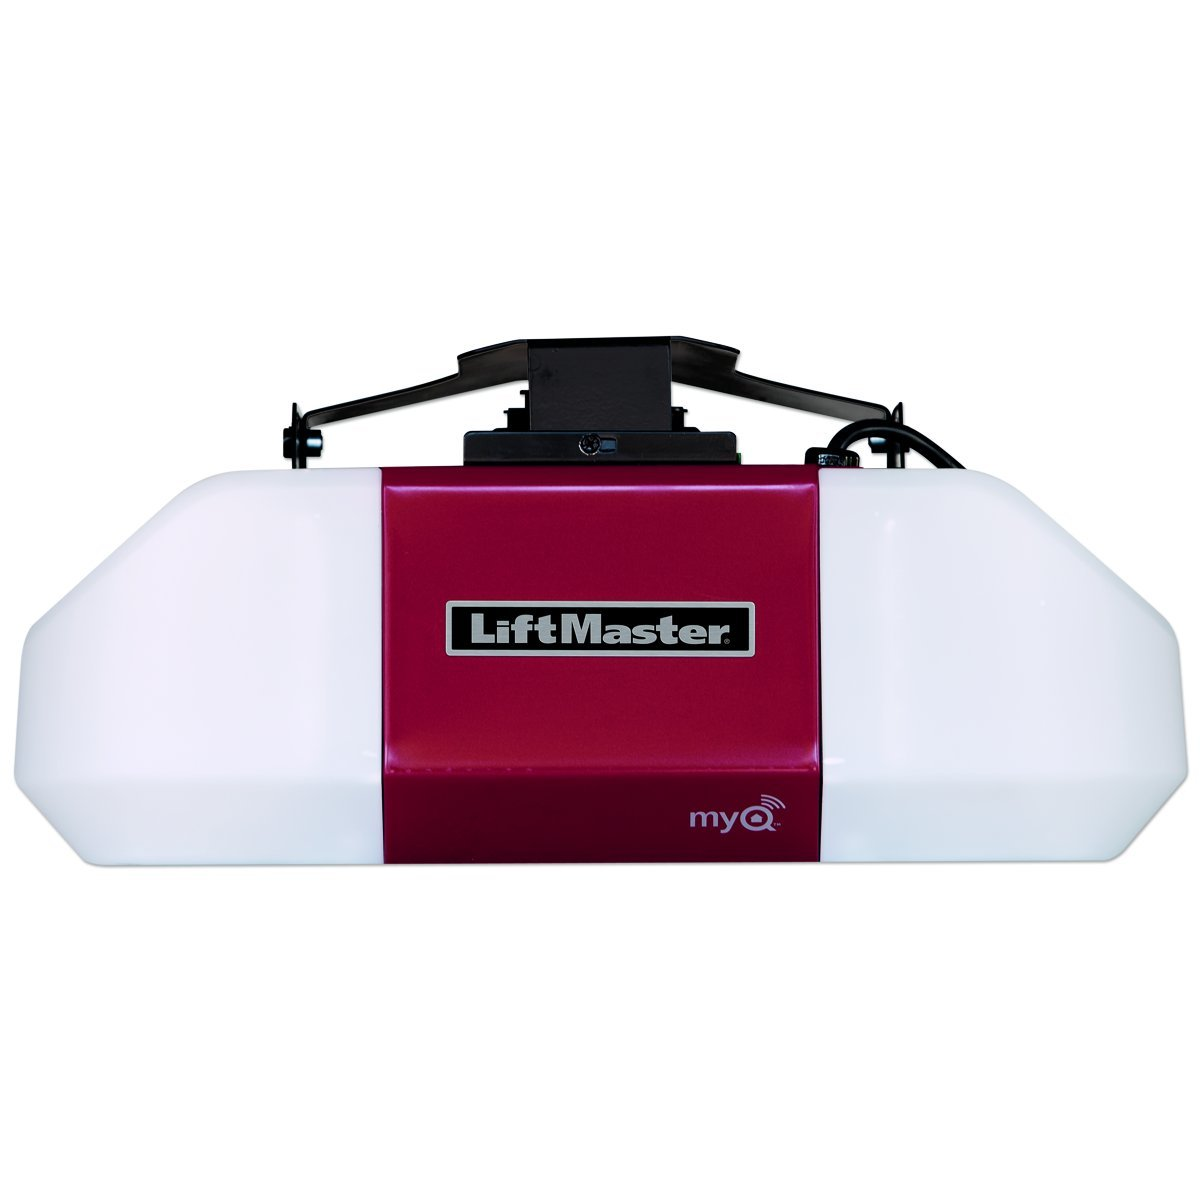 liftmaster mounted ligne de door moisan en garage wall portes opener openers elite magasin